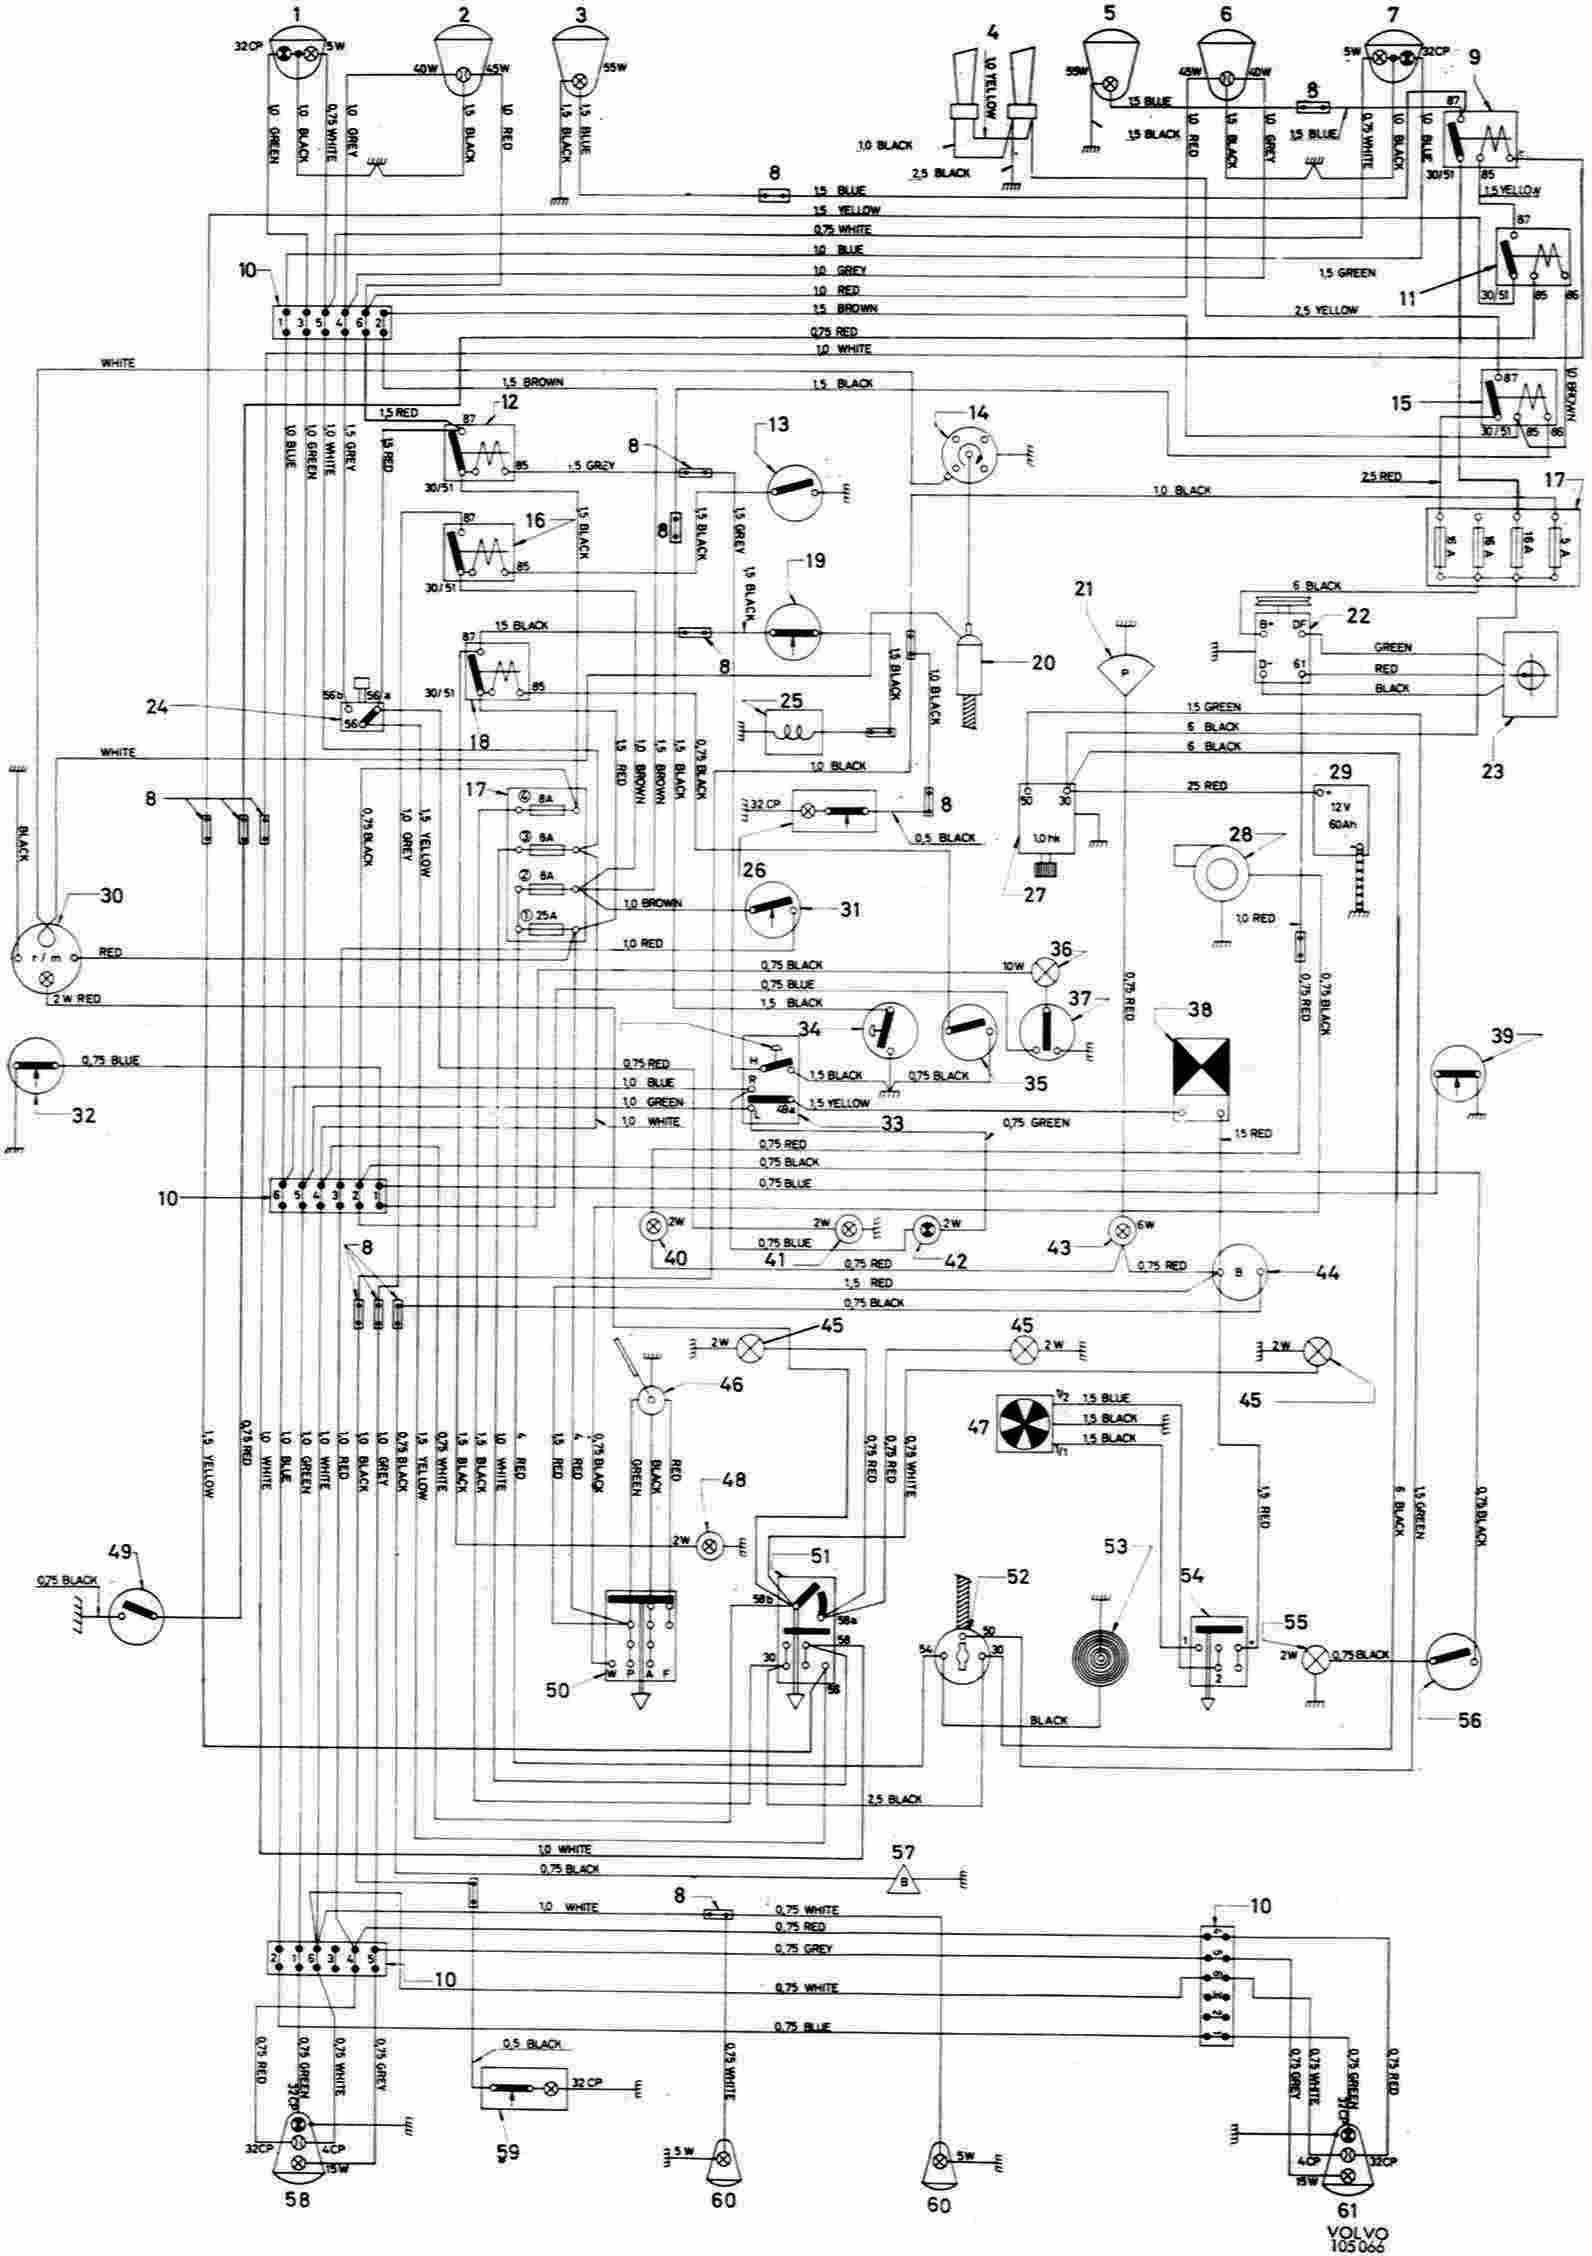 volvo truck wiring diagrams volvo 740 1989 wiring diagrams incredible volvo diagram blurts of volvo truck wiring diagrams volvo truck wiring diagrams all generation wiring schematics chevy